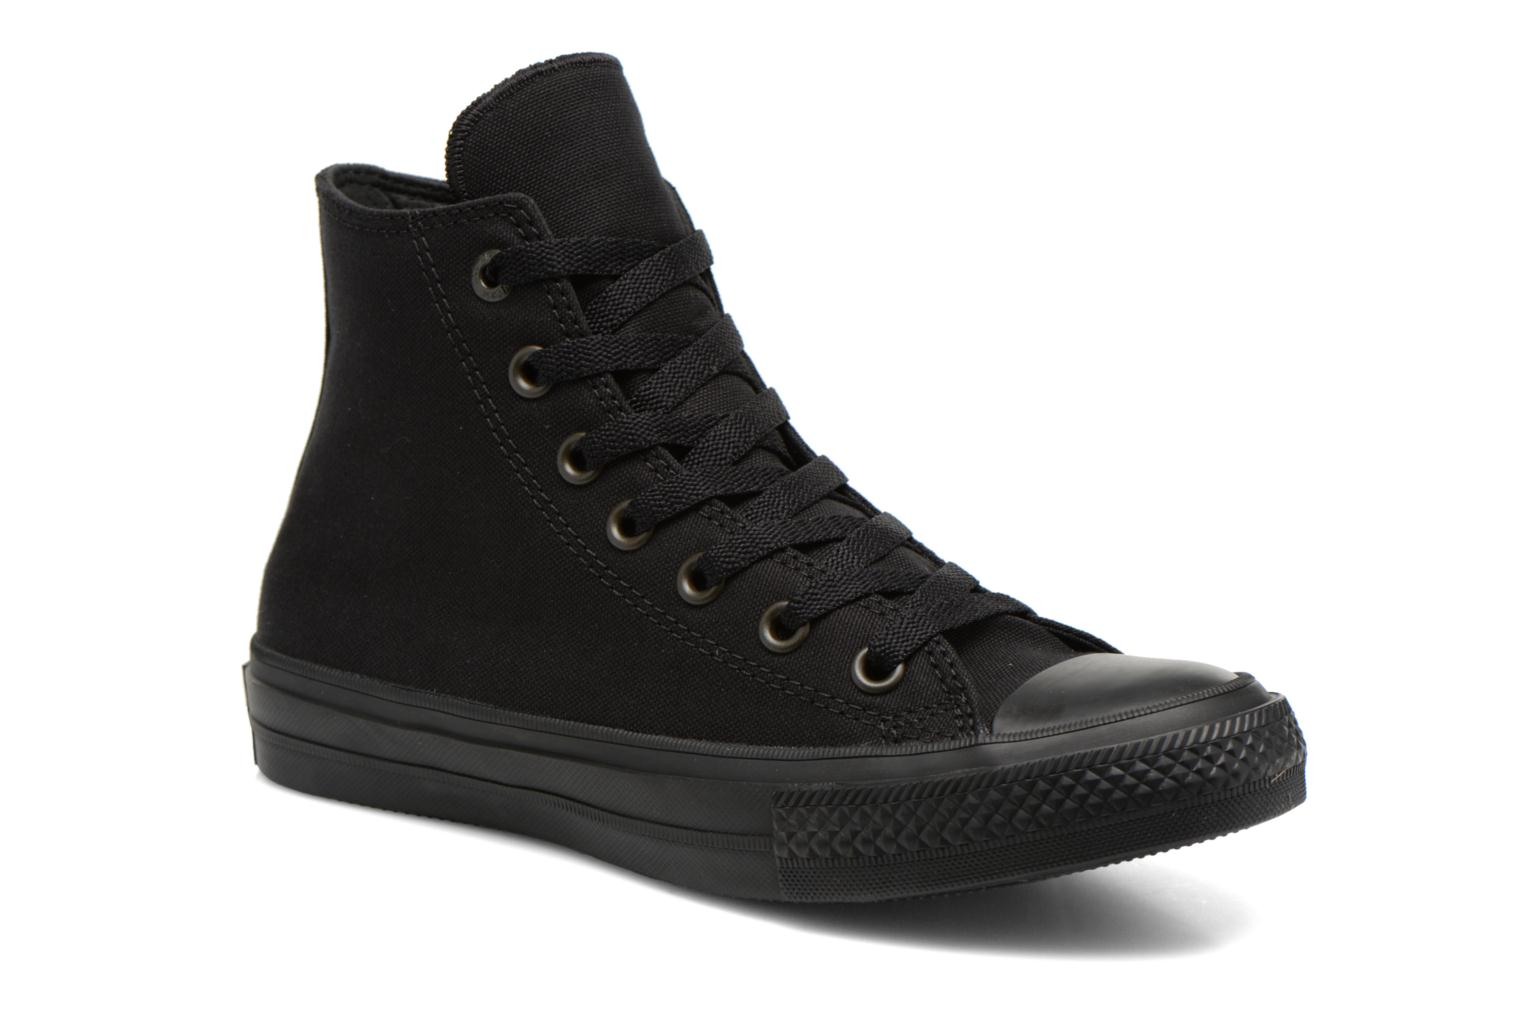 Chuck Taylor All Star II Hi W Black/black/black